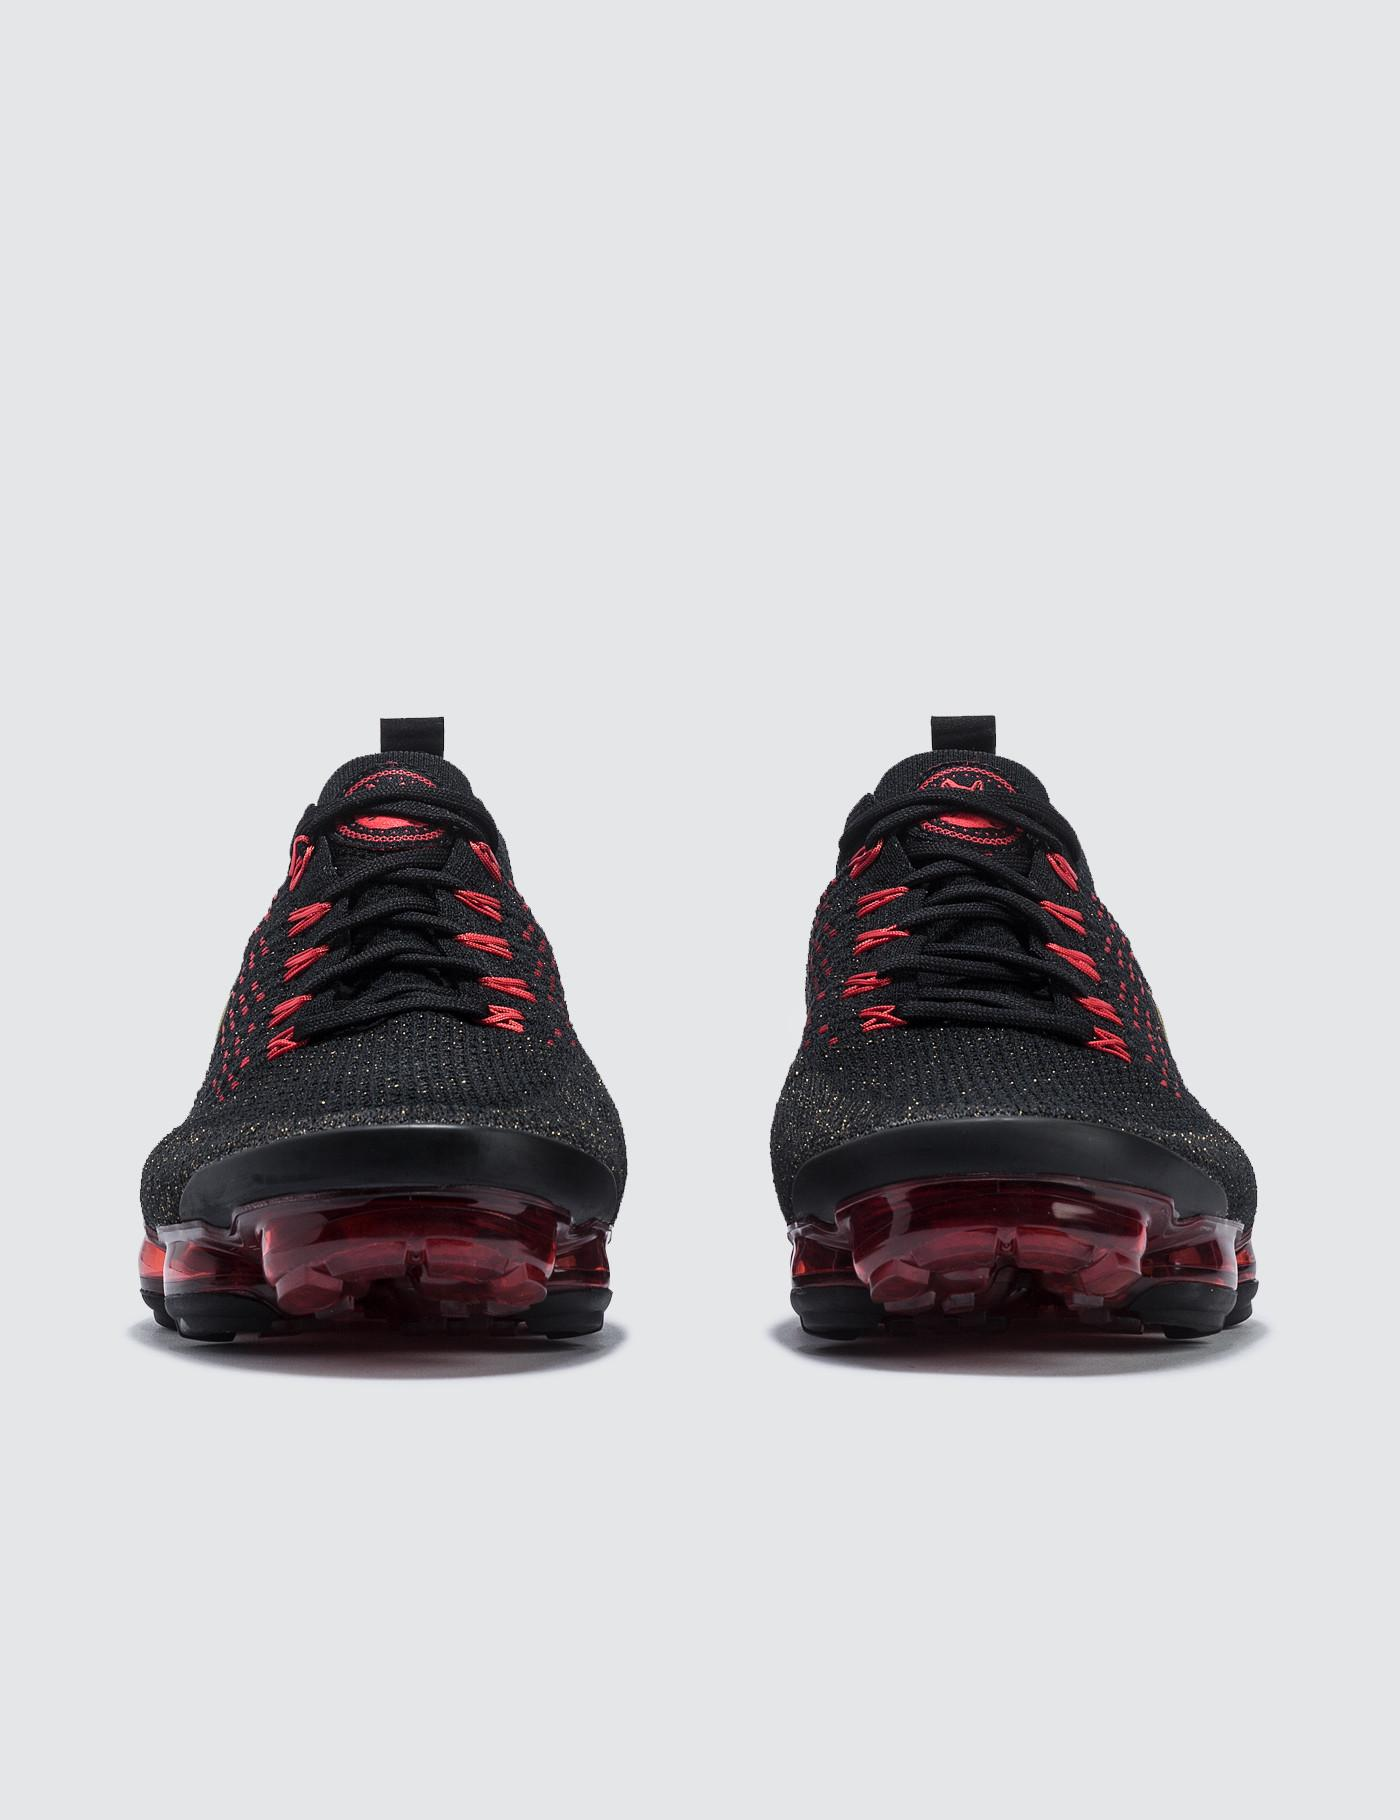 f75bde90c4430 Lyst - Nike Air Vapormax Fk 2 Cny in Black for Men - Save 15%